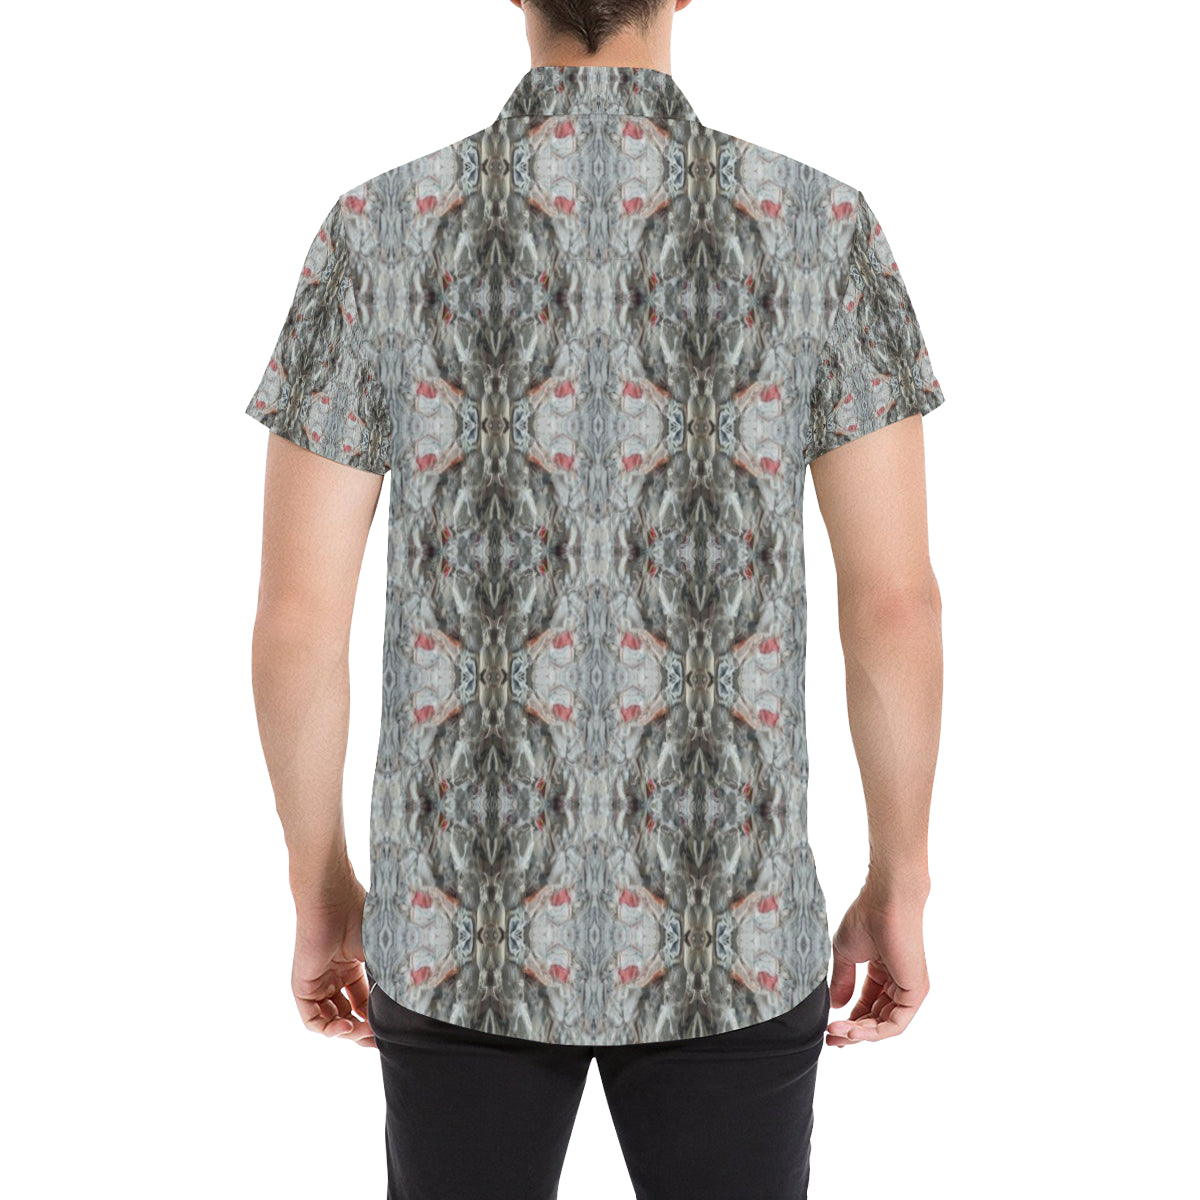 ChuArts Men's All Over Print Short Sleeve Shirt